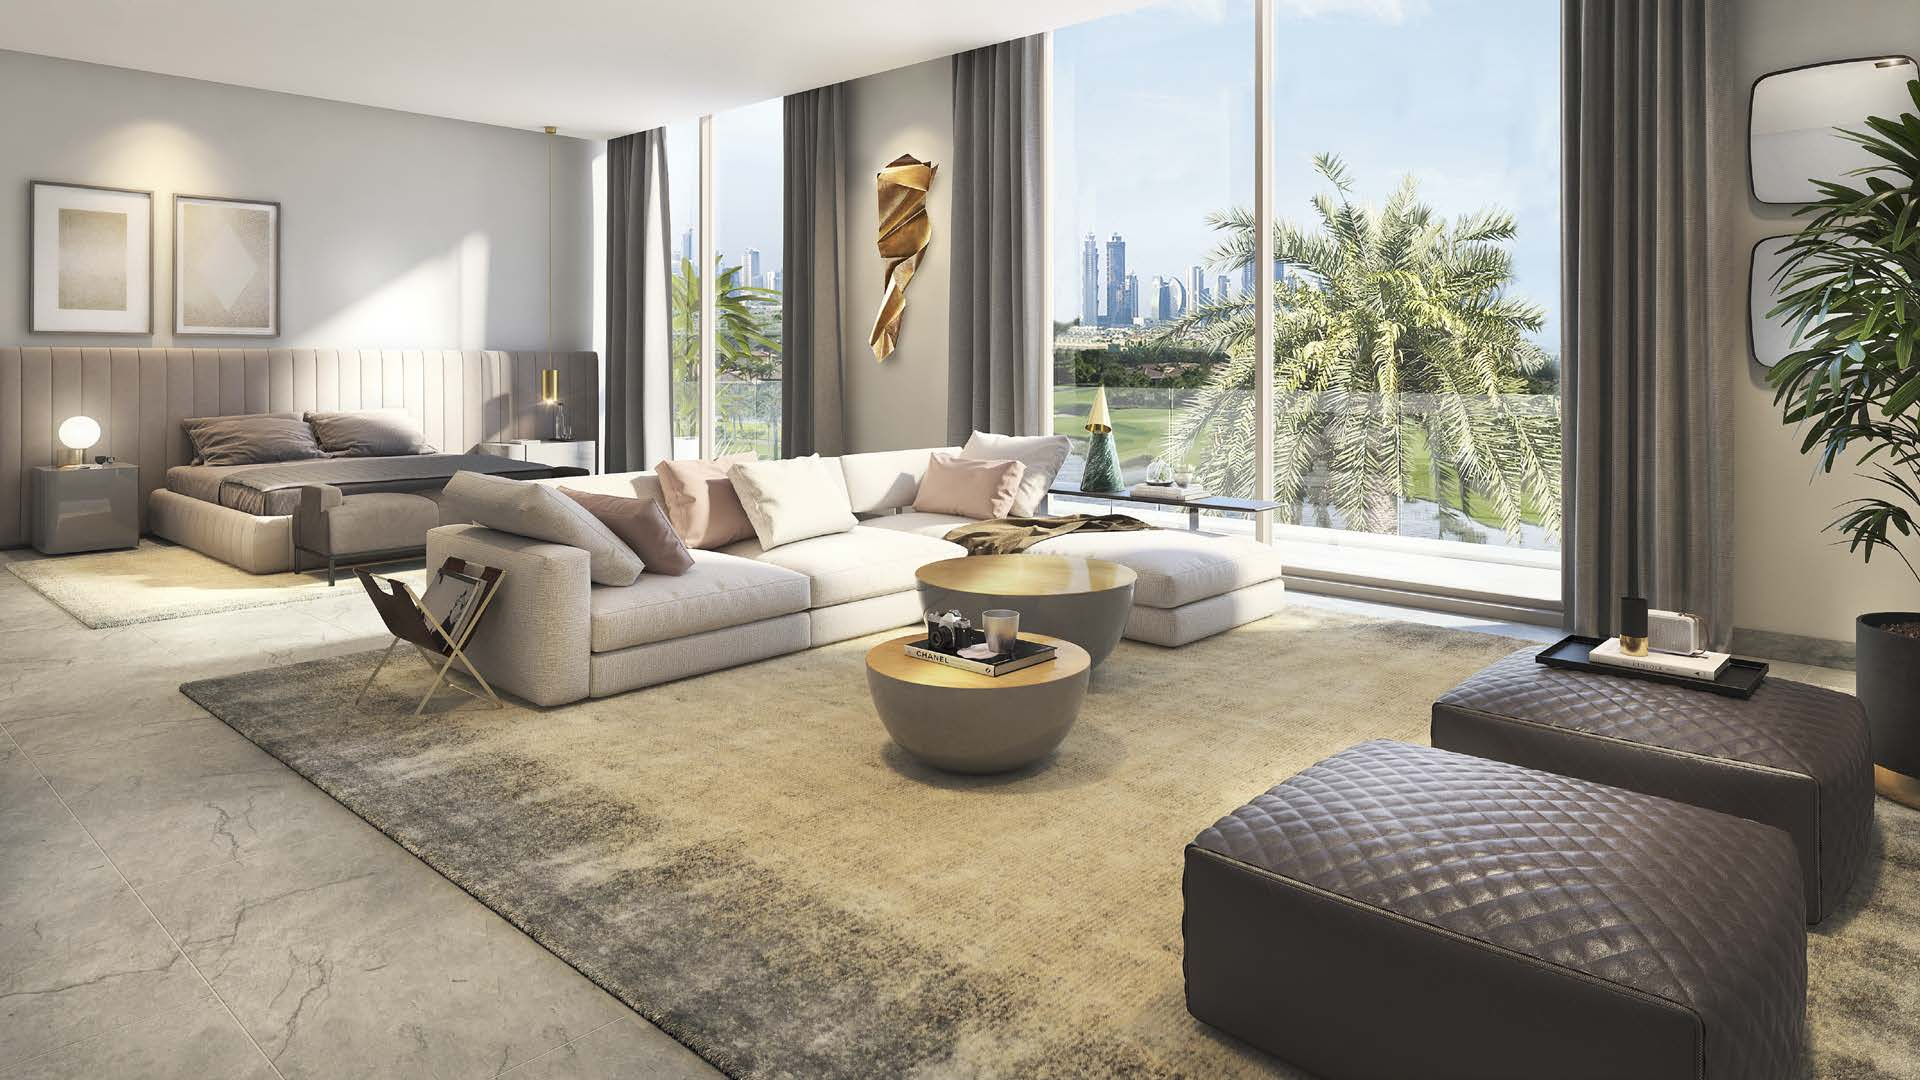 Interior Golf Place by Emaar at Dubai Hills Estate